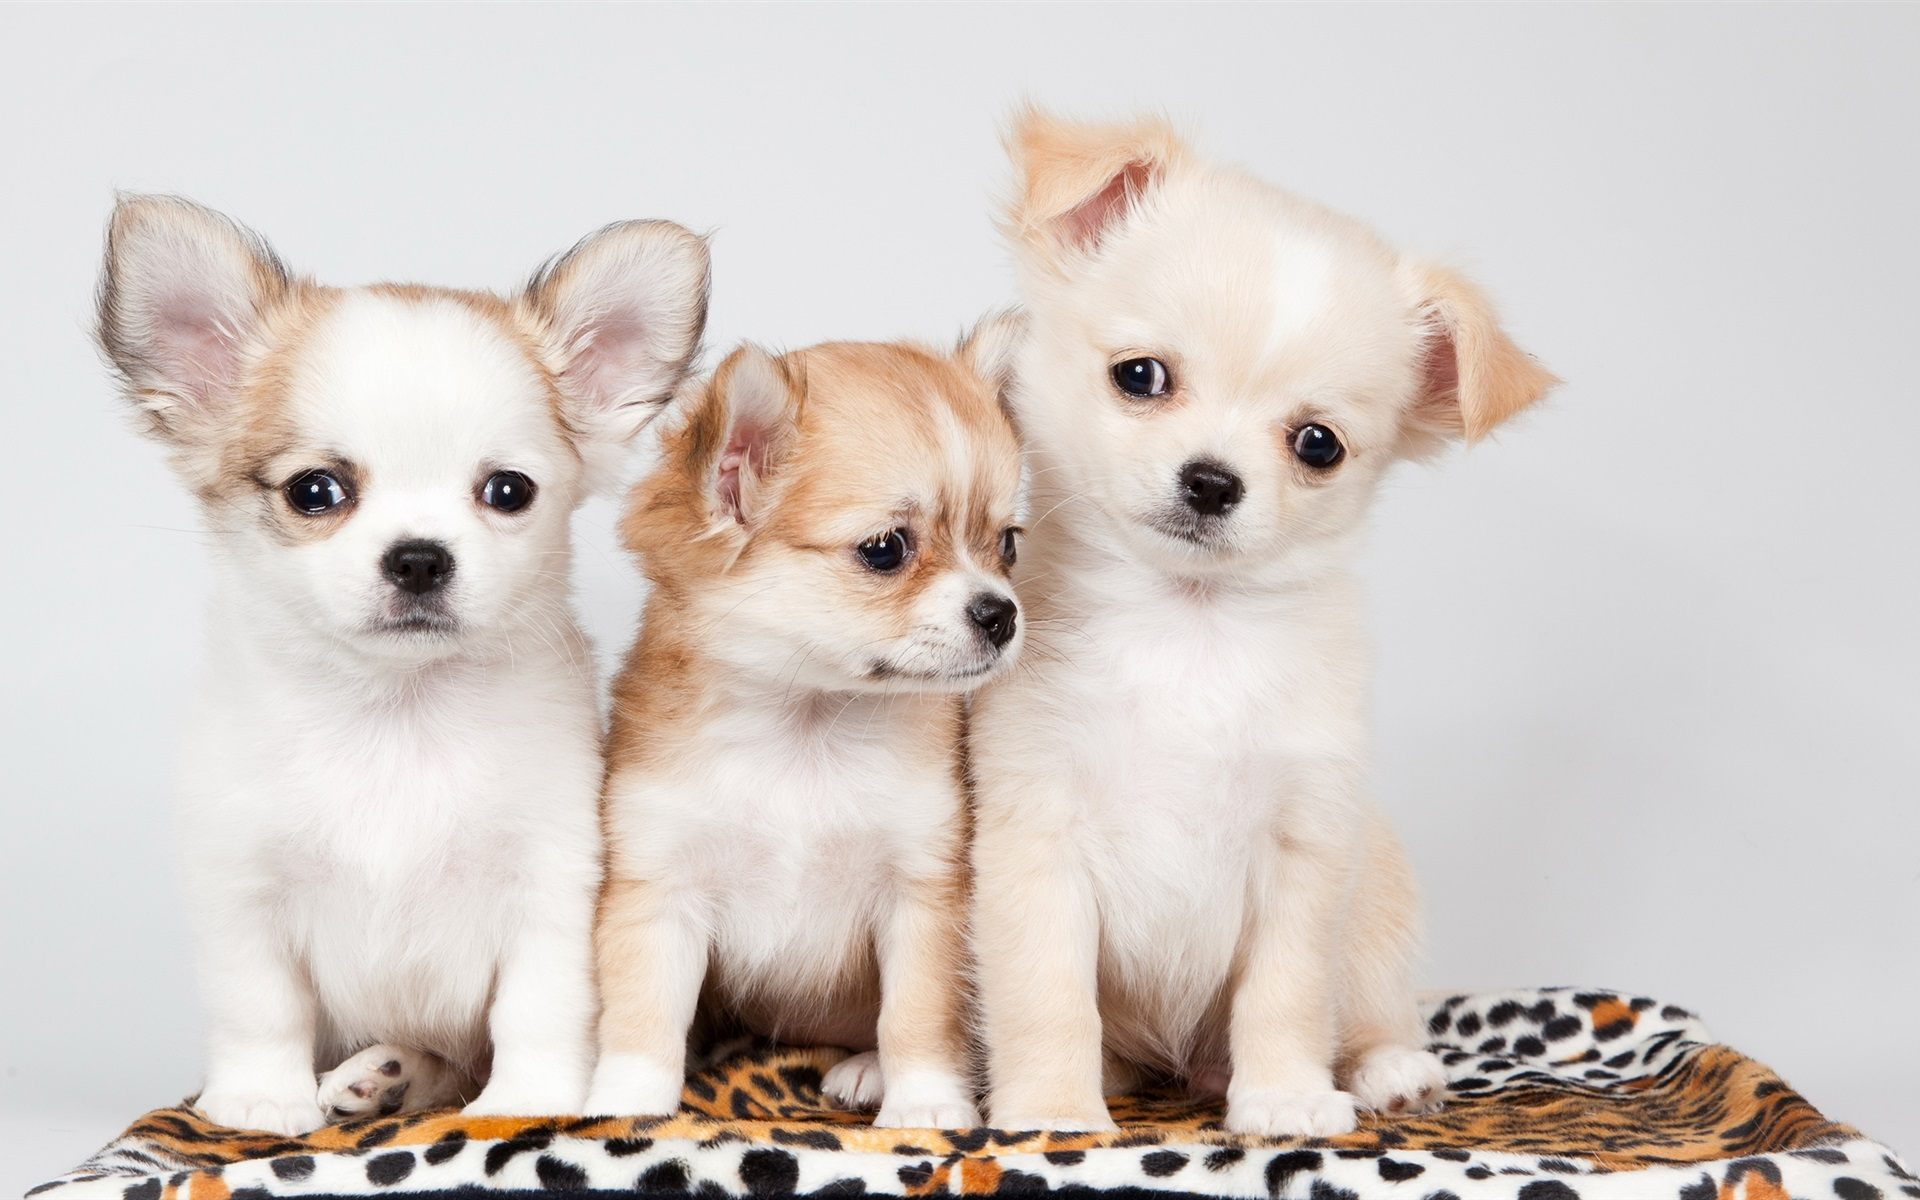 cute-puppies-wallpaper-wpc5803855